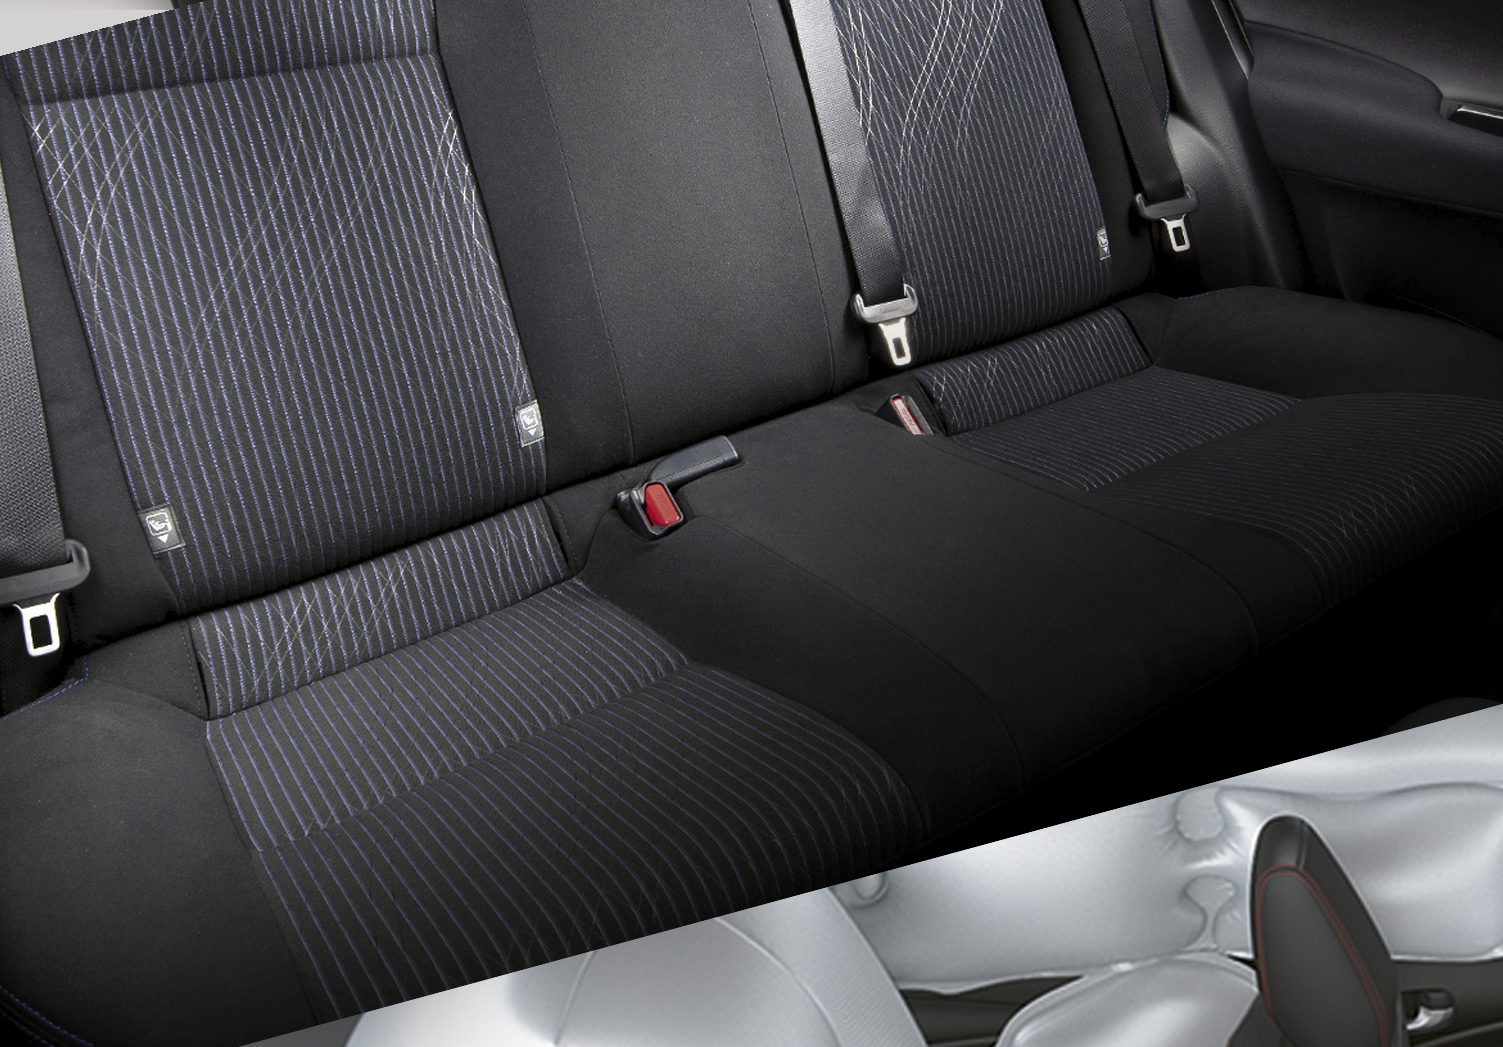 Find comfort in an all-in-one car that fits your needs